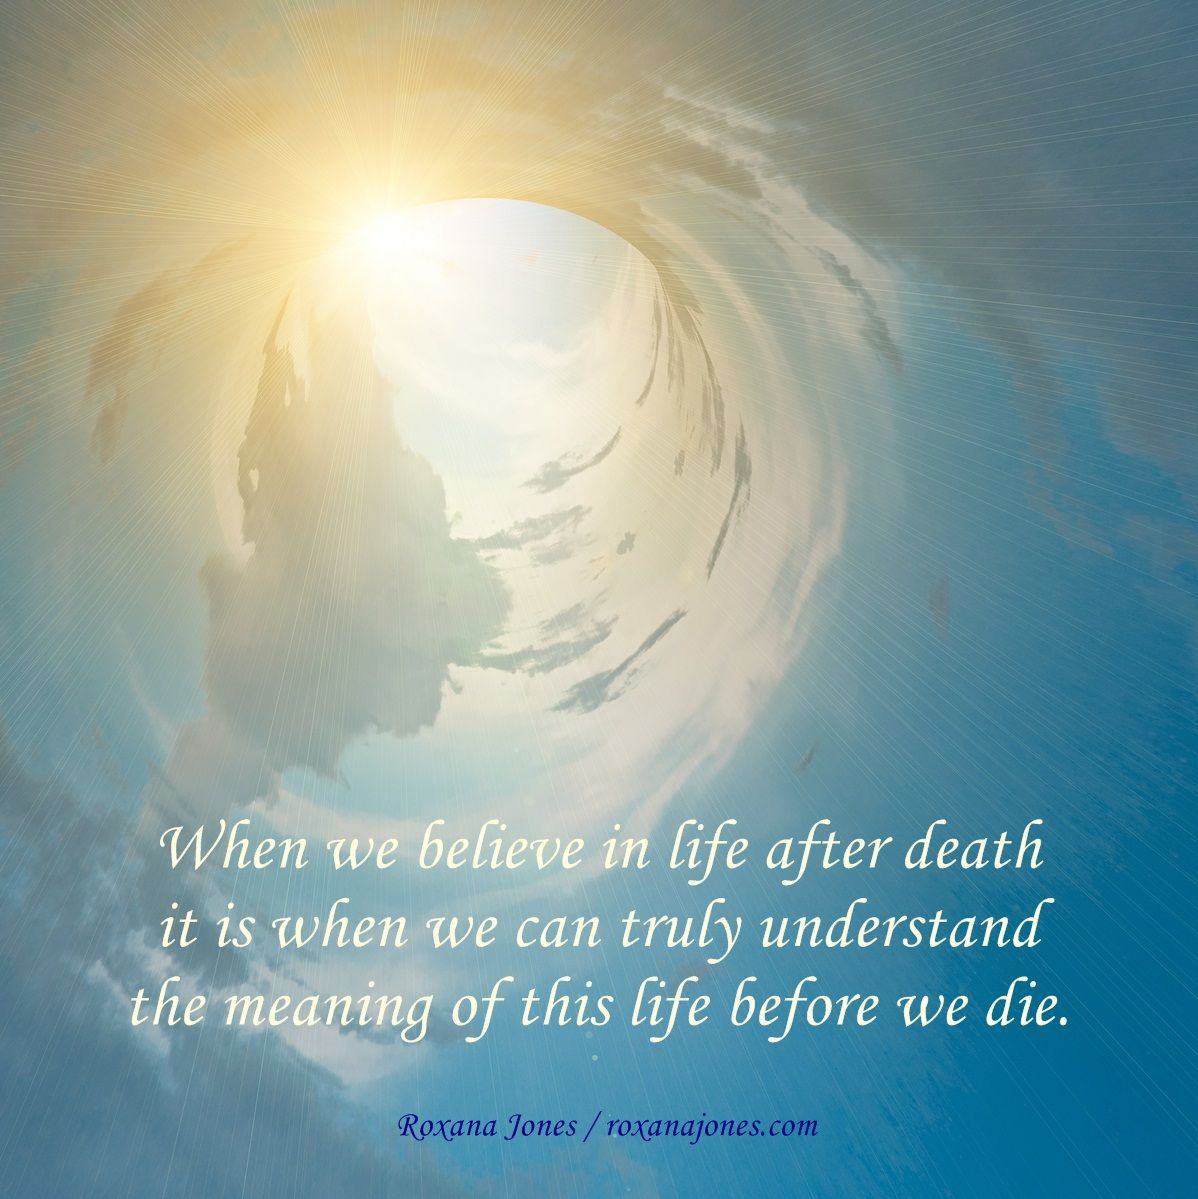 Quotes About Death And Life Daily Inspiration Nonexistent Death  Life & Death  Pinterest